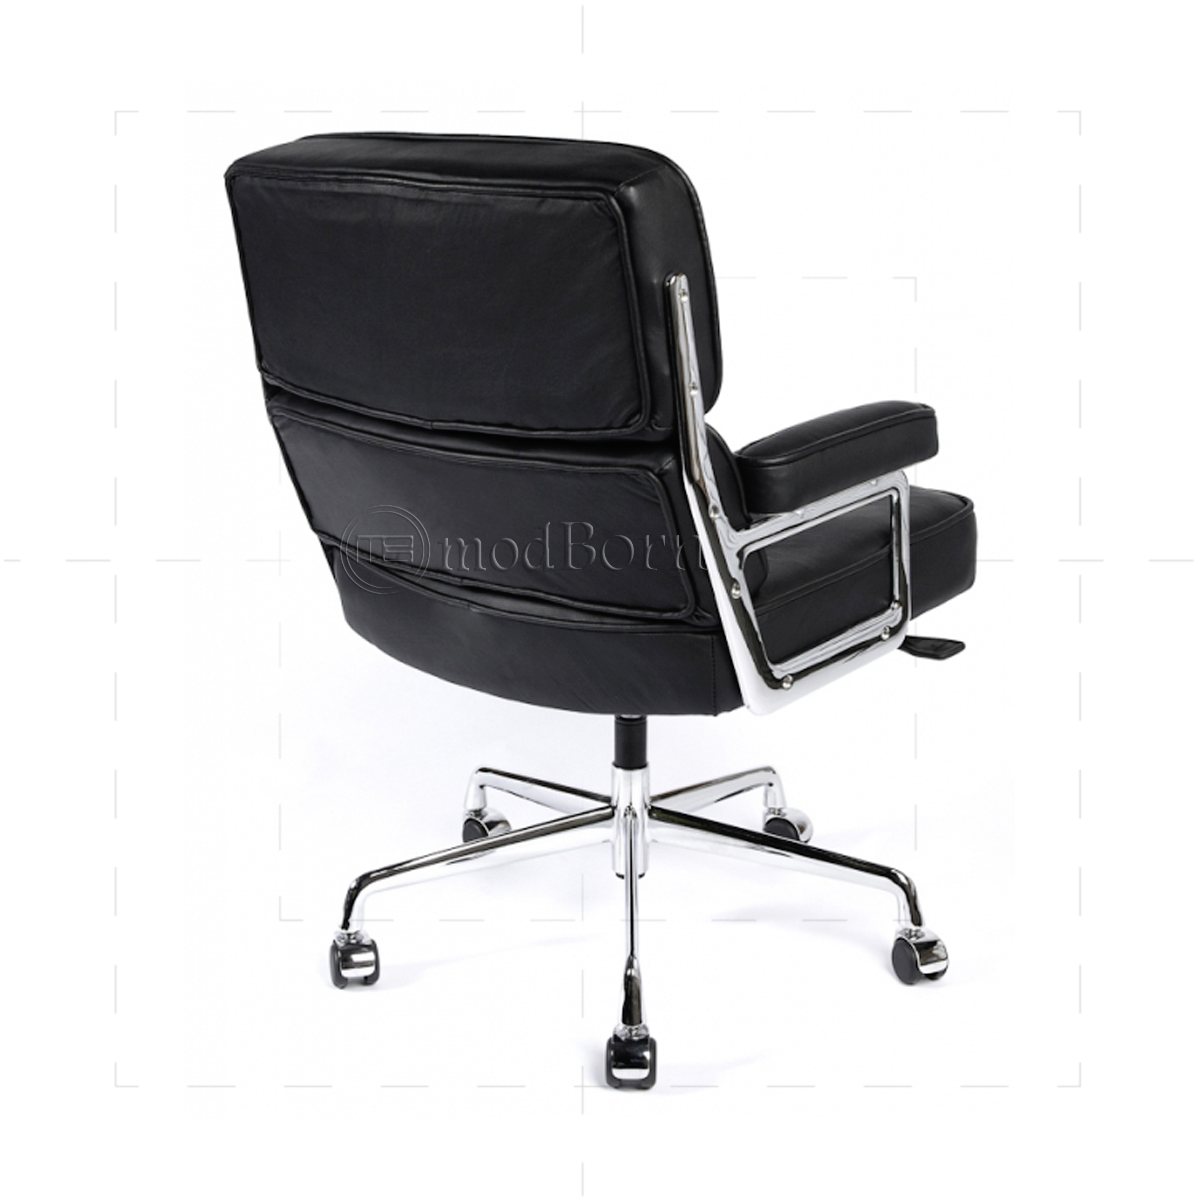 EA104 Eames Style Office Lobby Black Leather Executive Chair   Replica